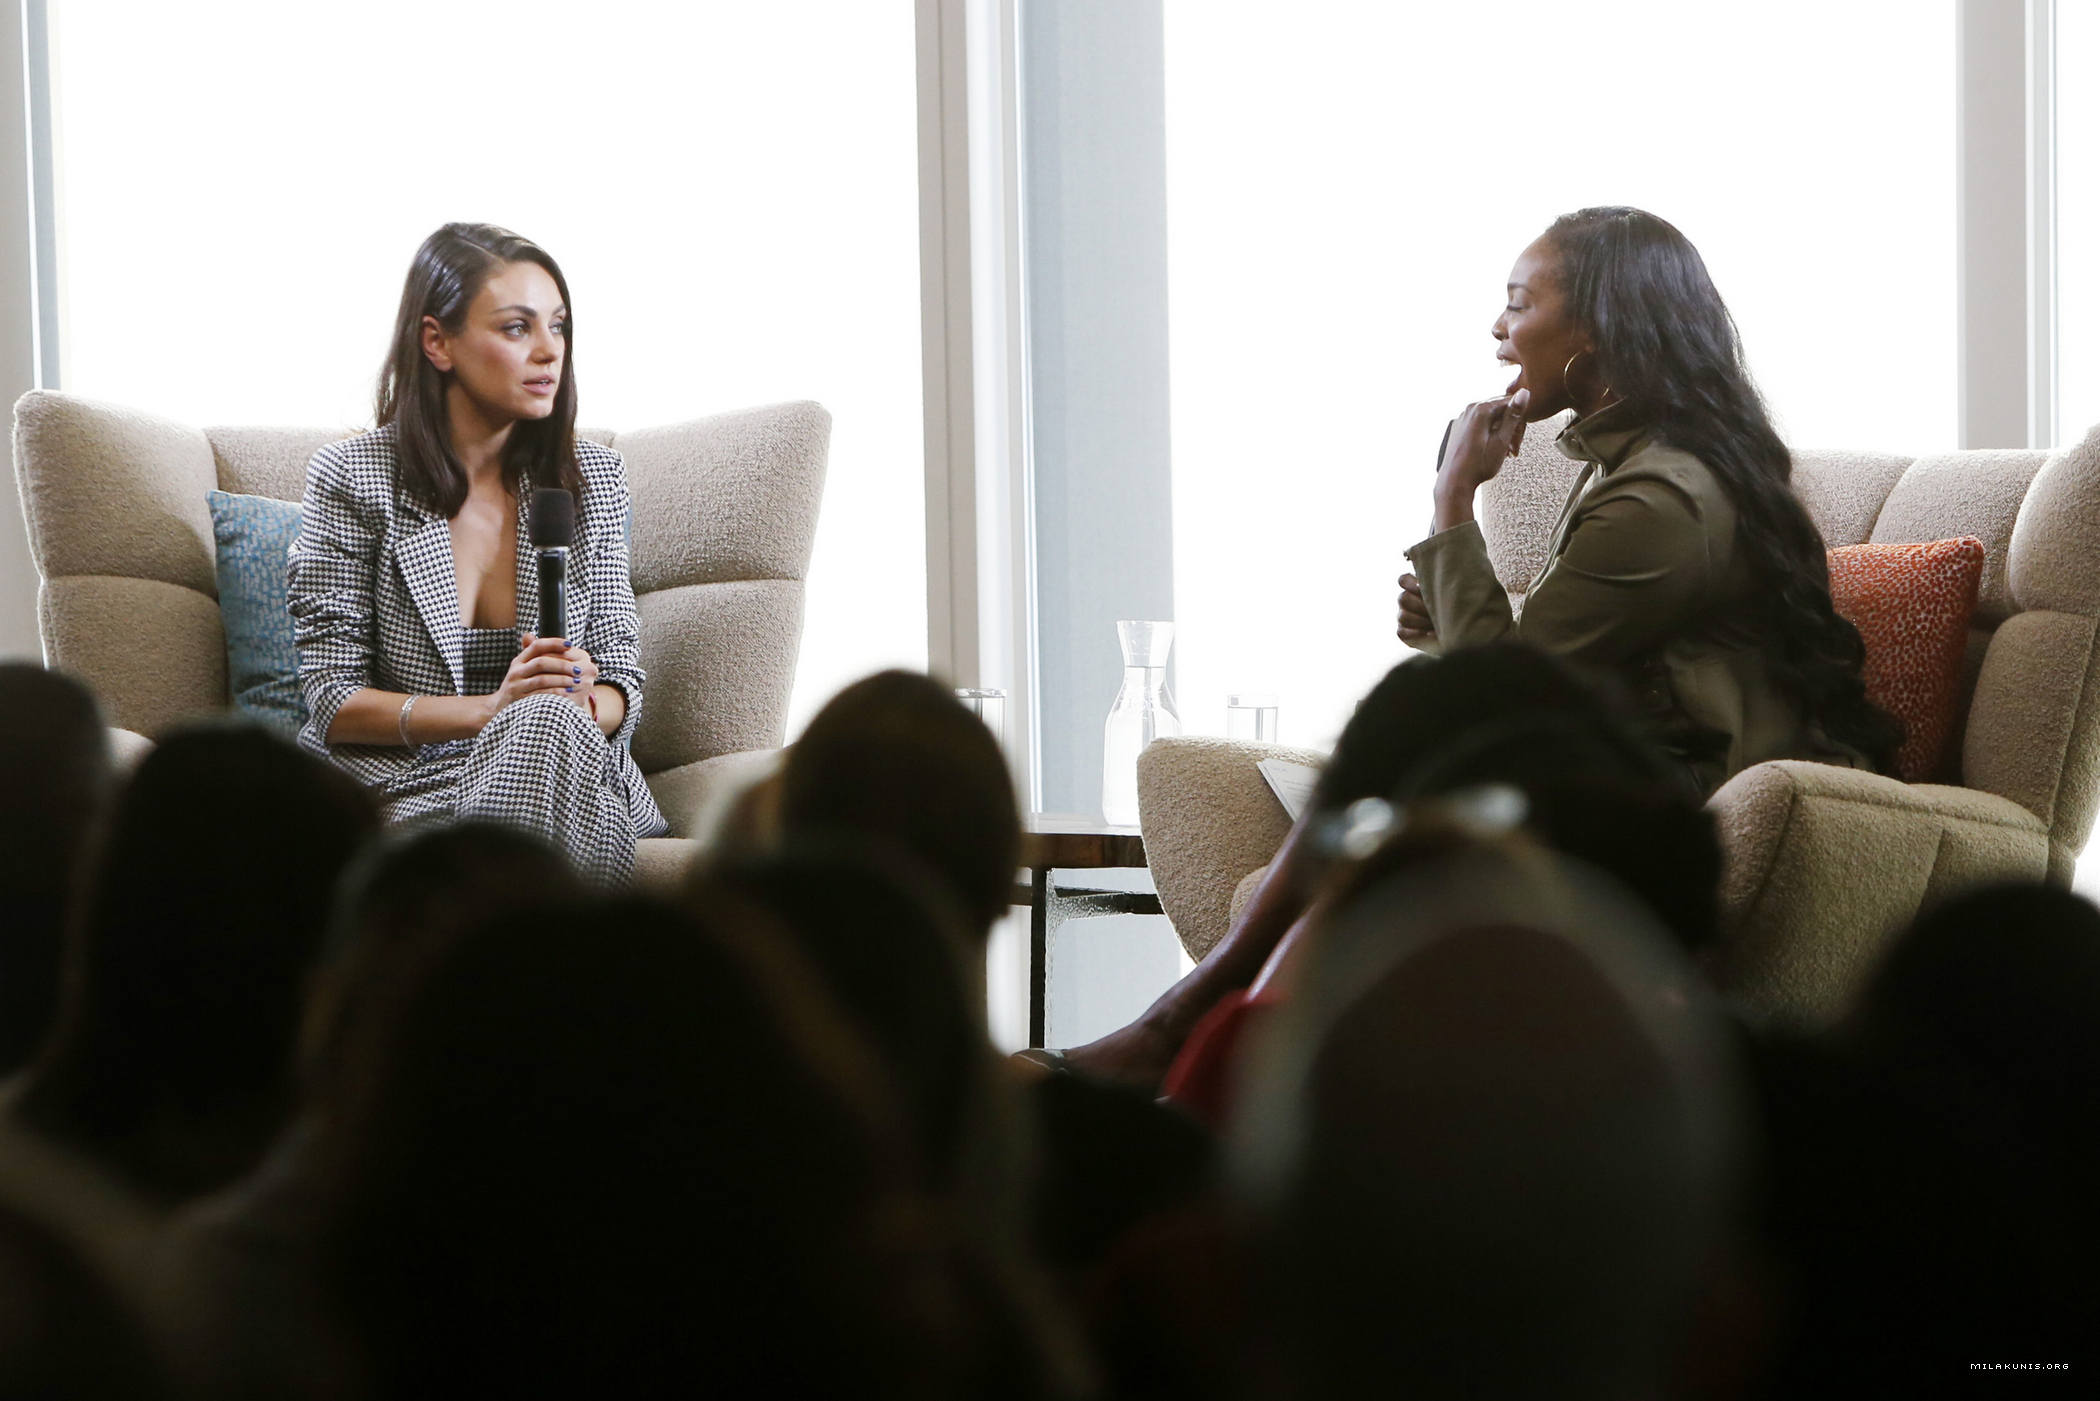 Photos: Mila Kunis Speaks At Salesforce For UN Human